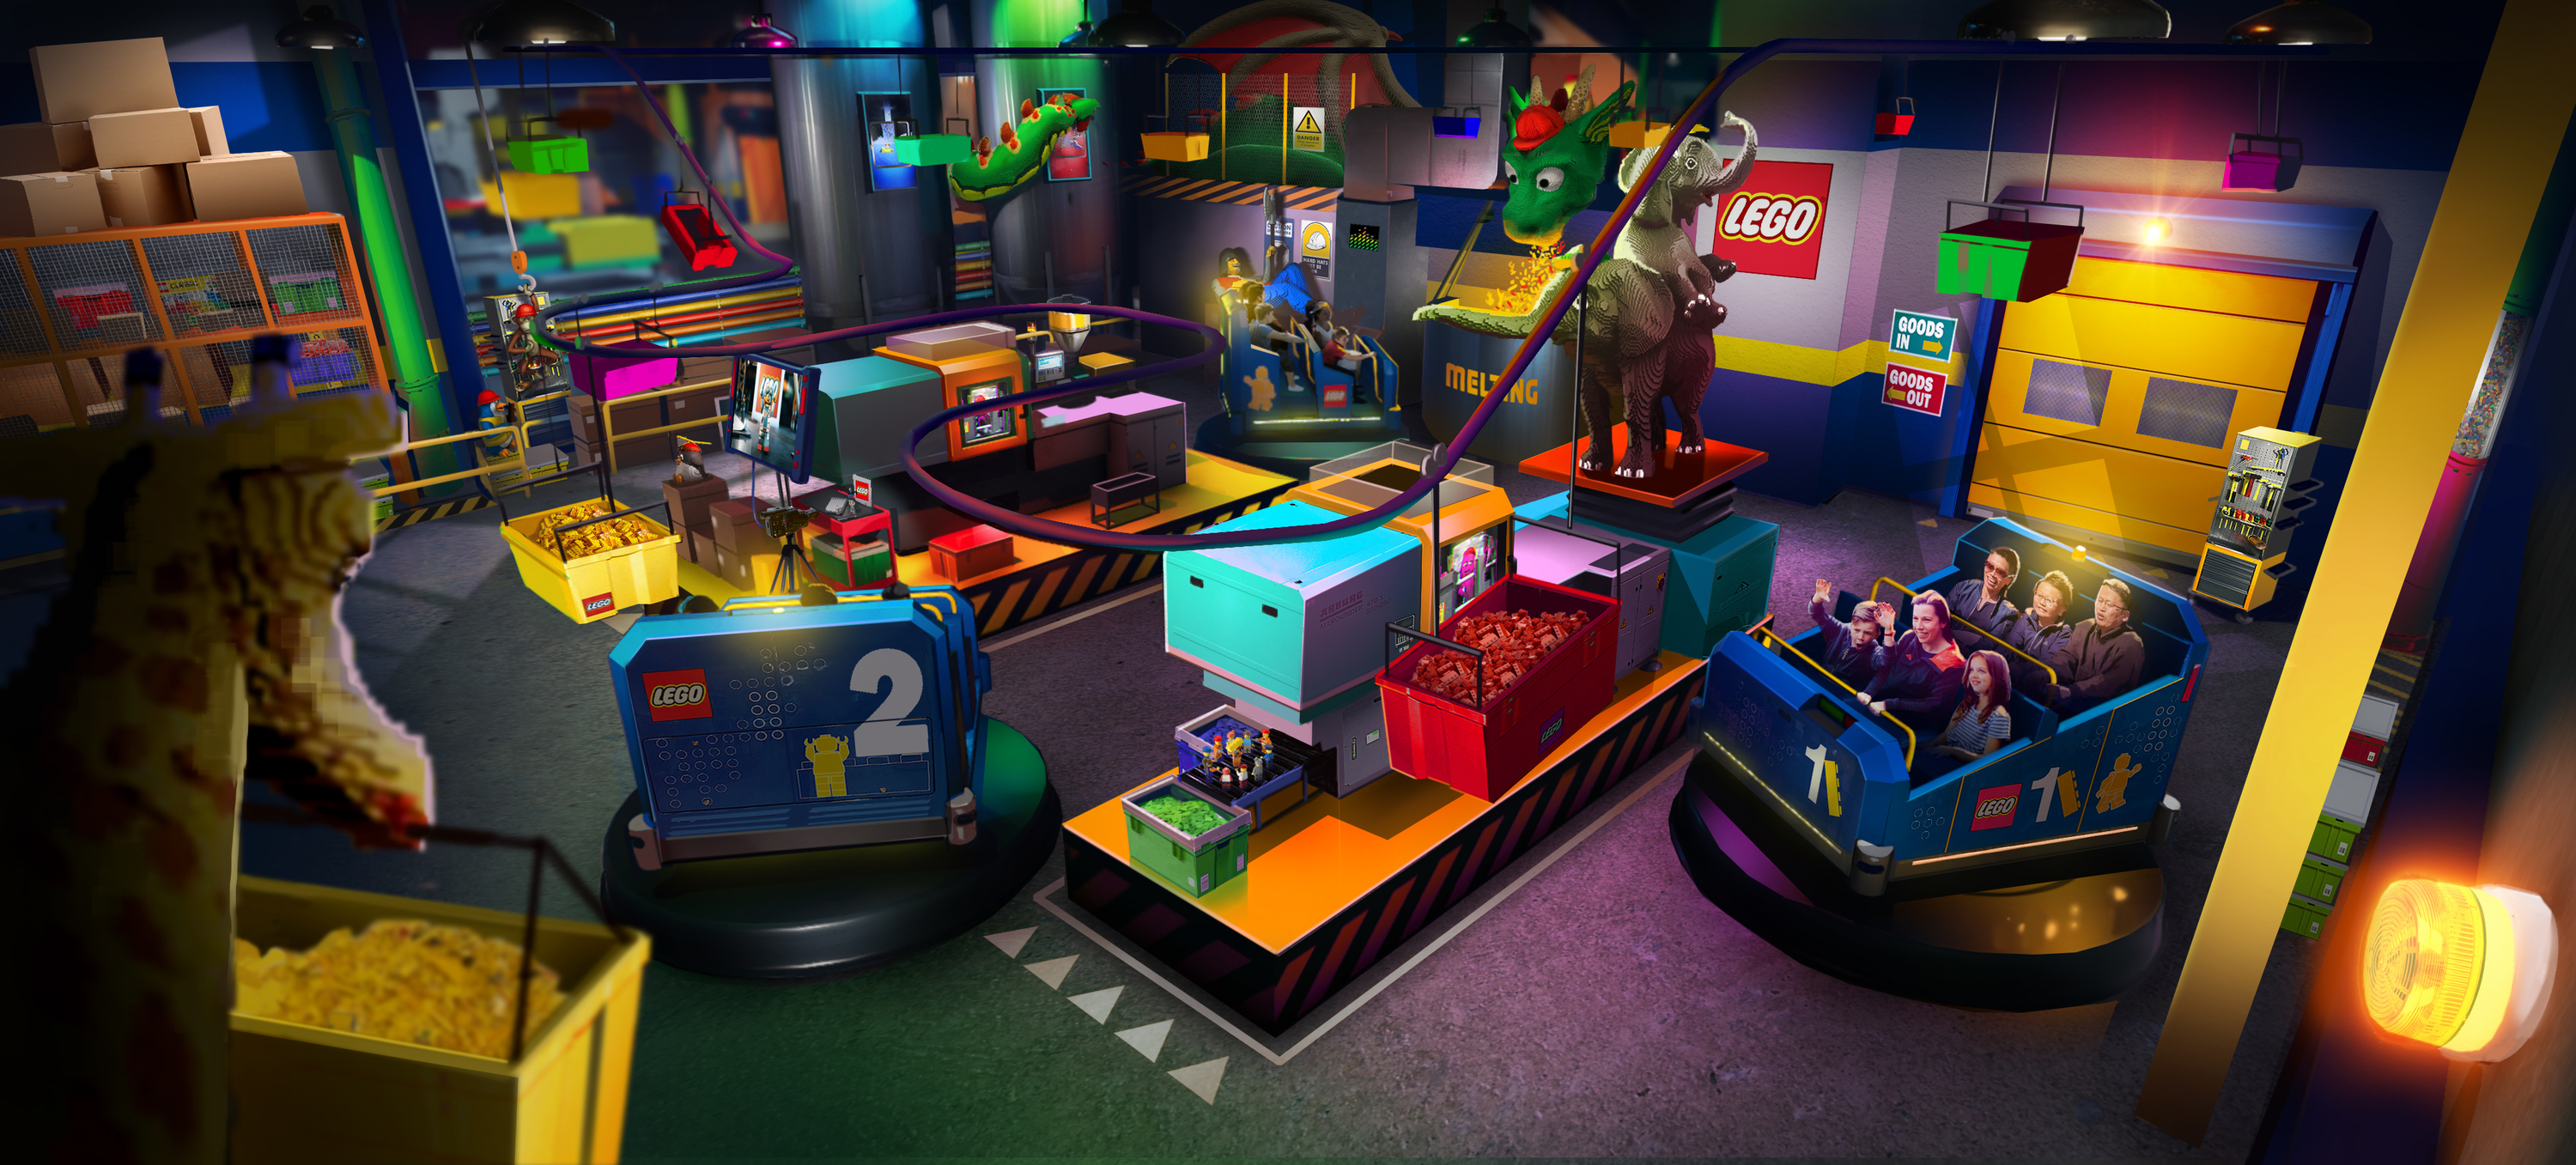 Get a sneak peek at LEGOLAND New York's coolest ride